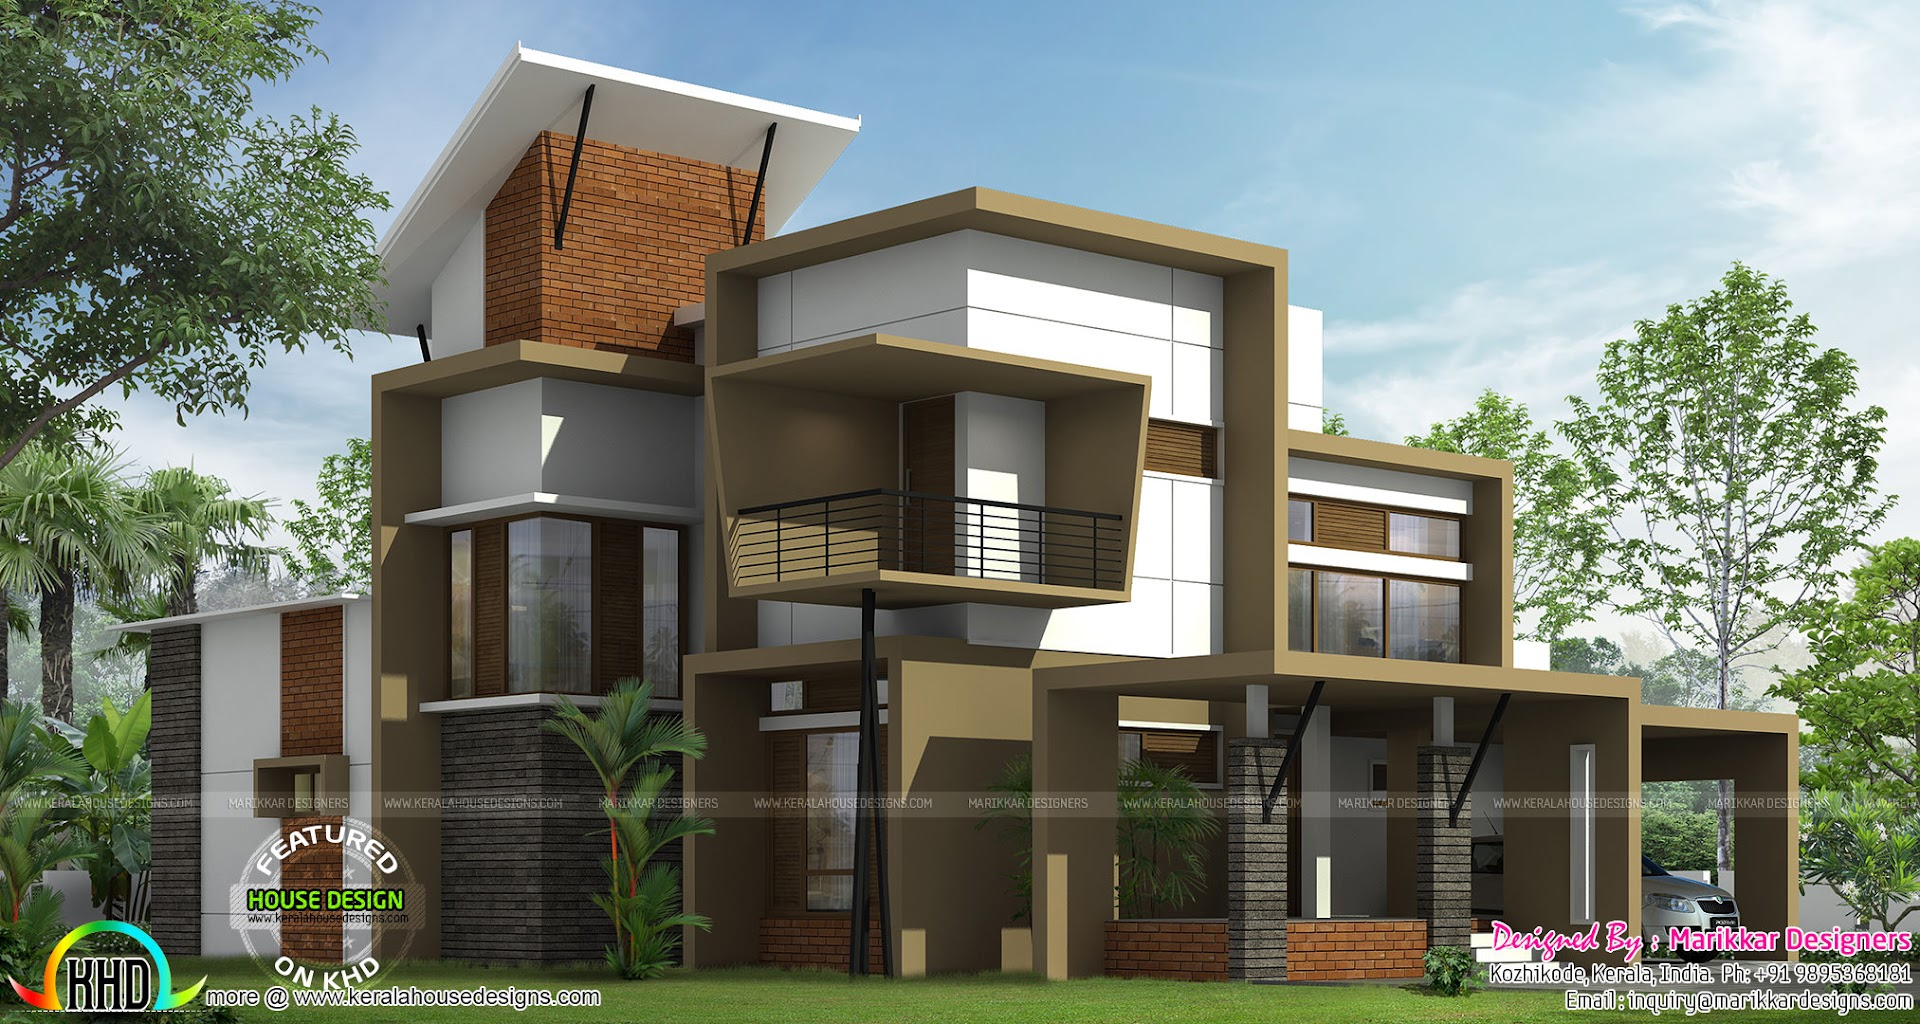 Modern ultra contemporary house kerala home design and for New design house image